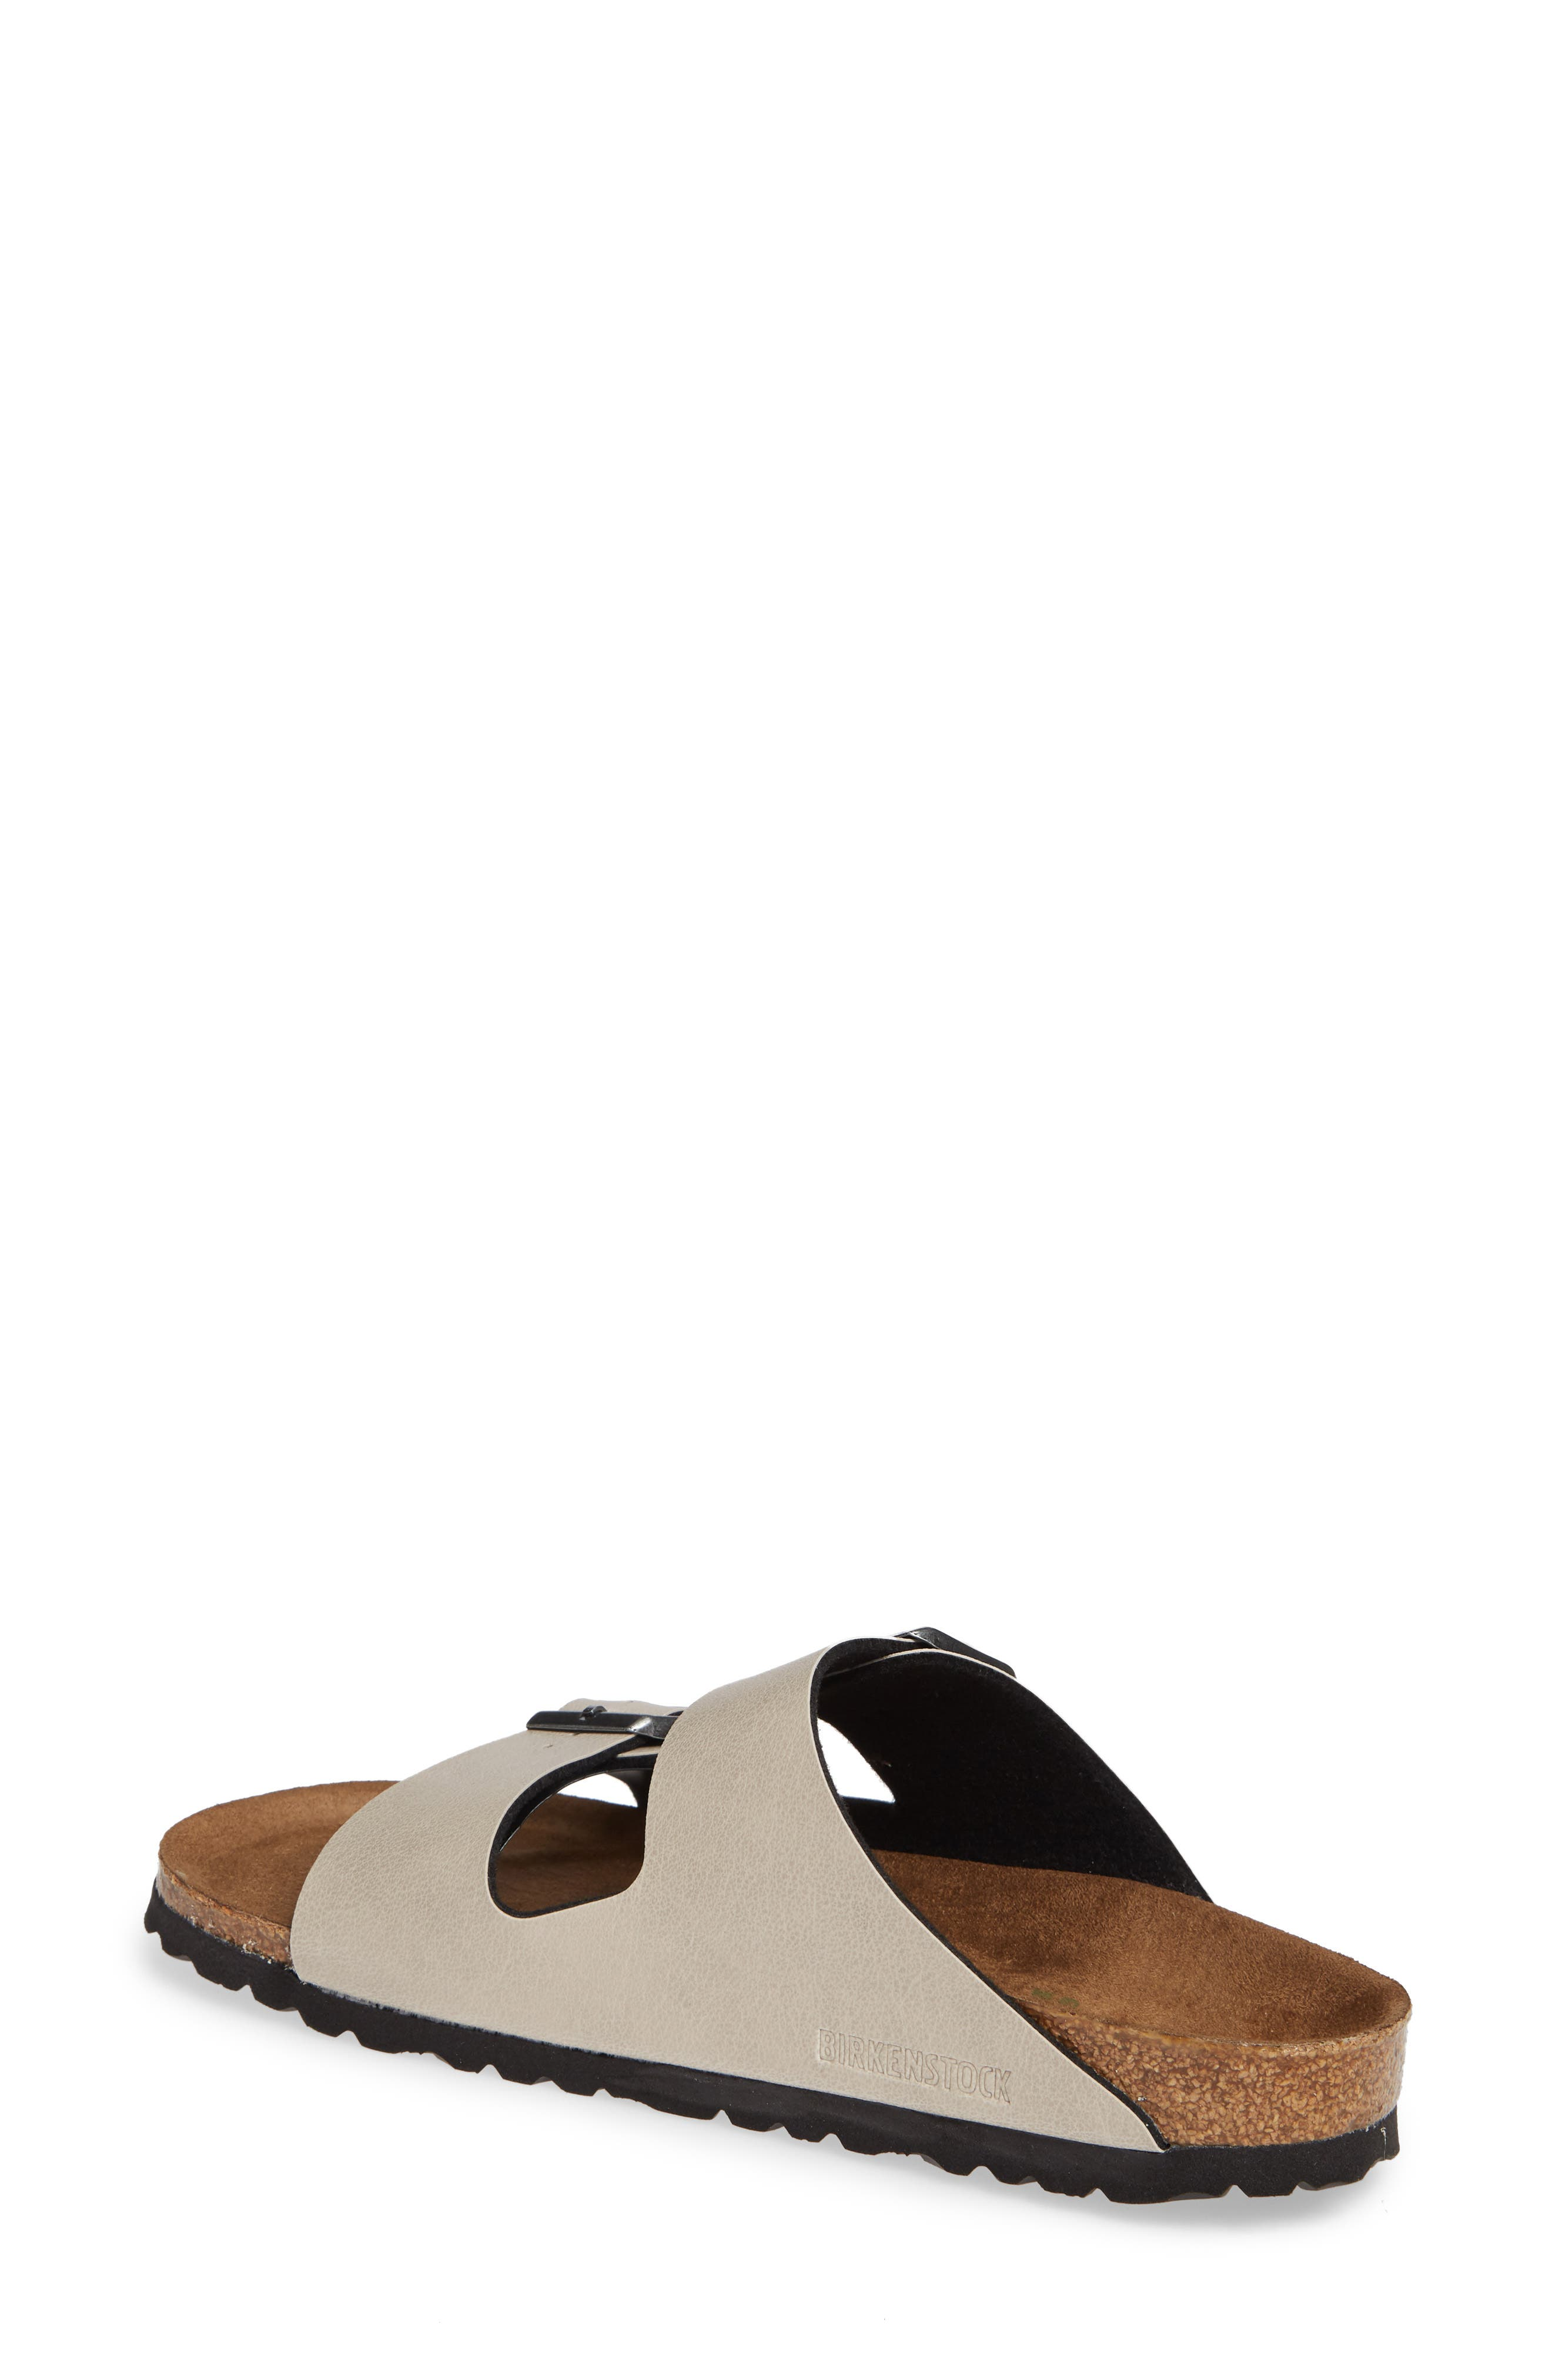 Arizona Birko-Flor<sup>™</sup> Slide Sandal,                             Alternate thumbnail 2, color,                             PULL UP STONE FAUX LEATHER